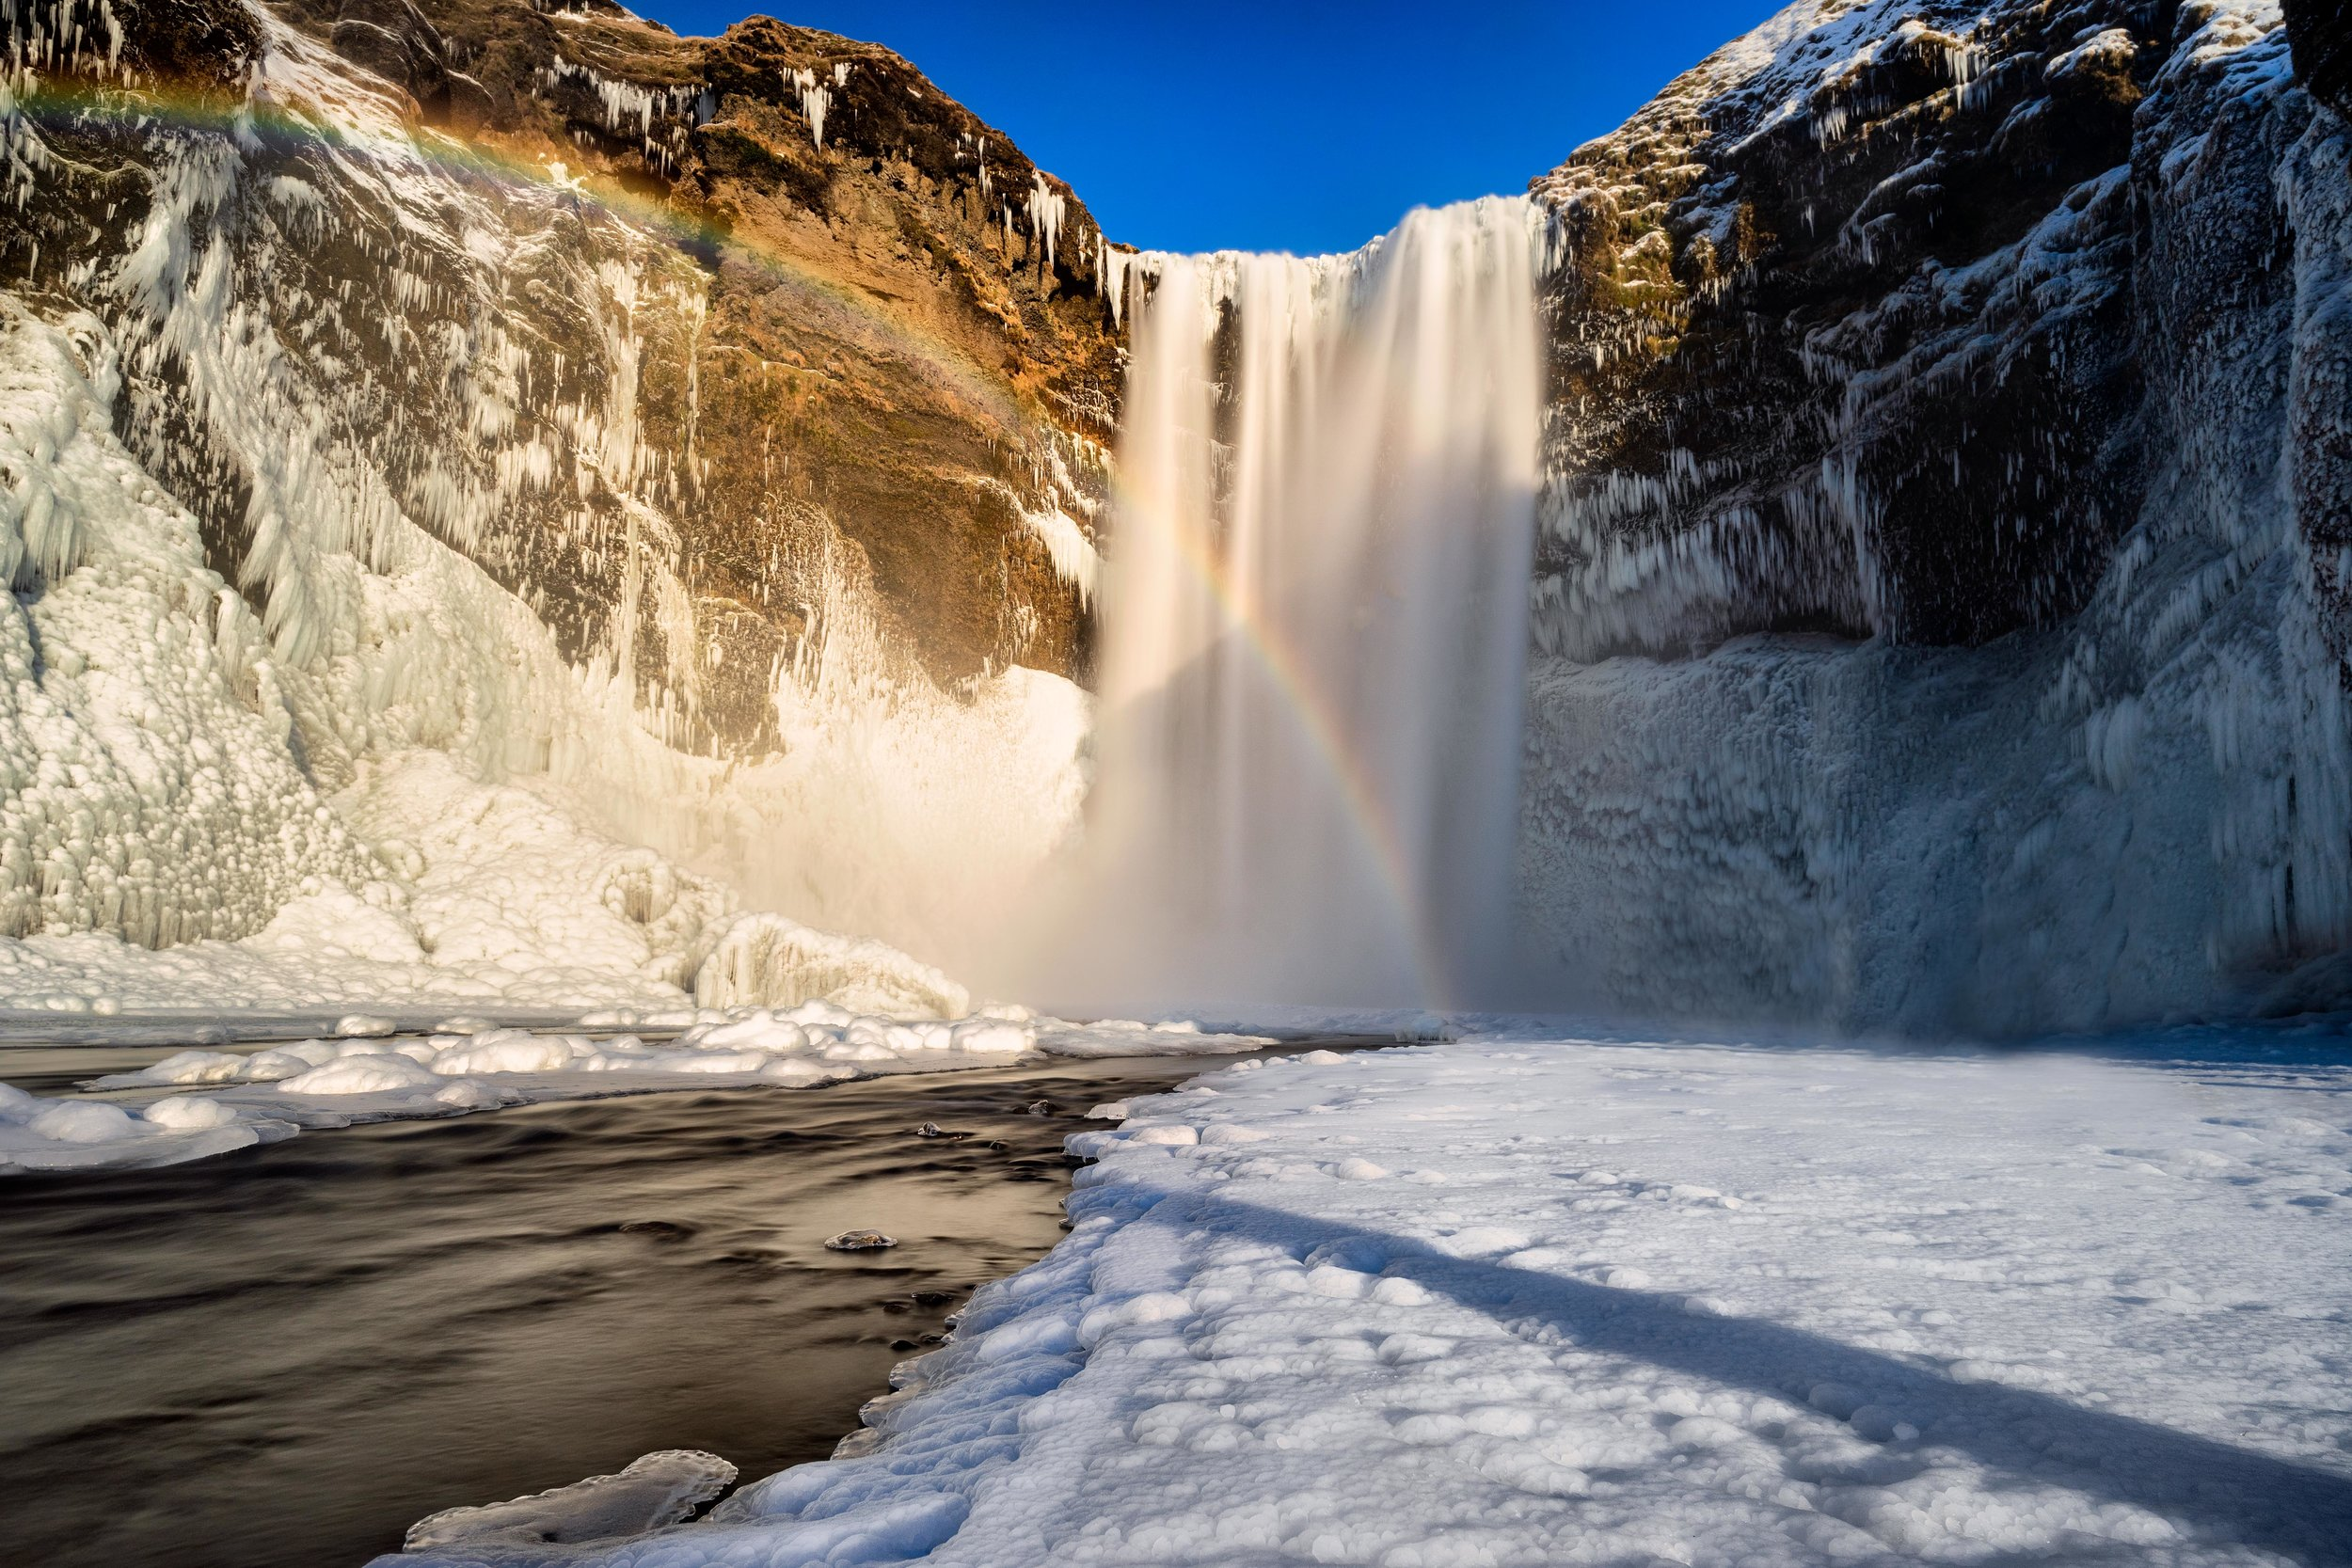 Iceland. snow. travel. adventure. photography. trip. epic landscape. snow. cold. freezing. sunrise. epic waterfall with rainbow.jpg